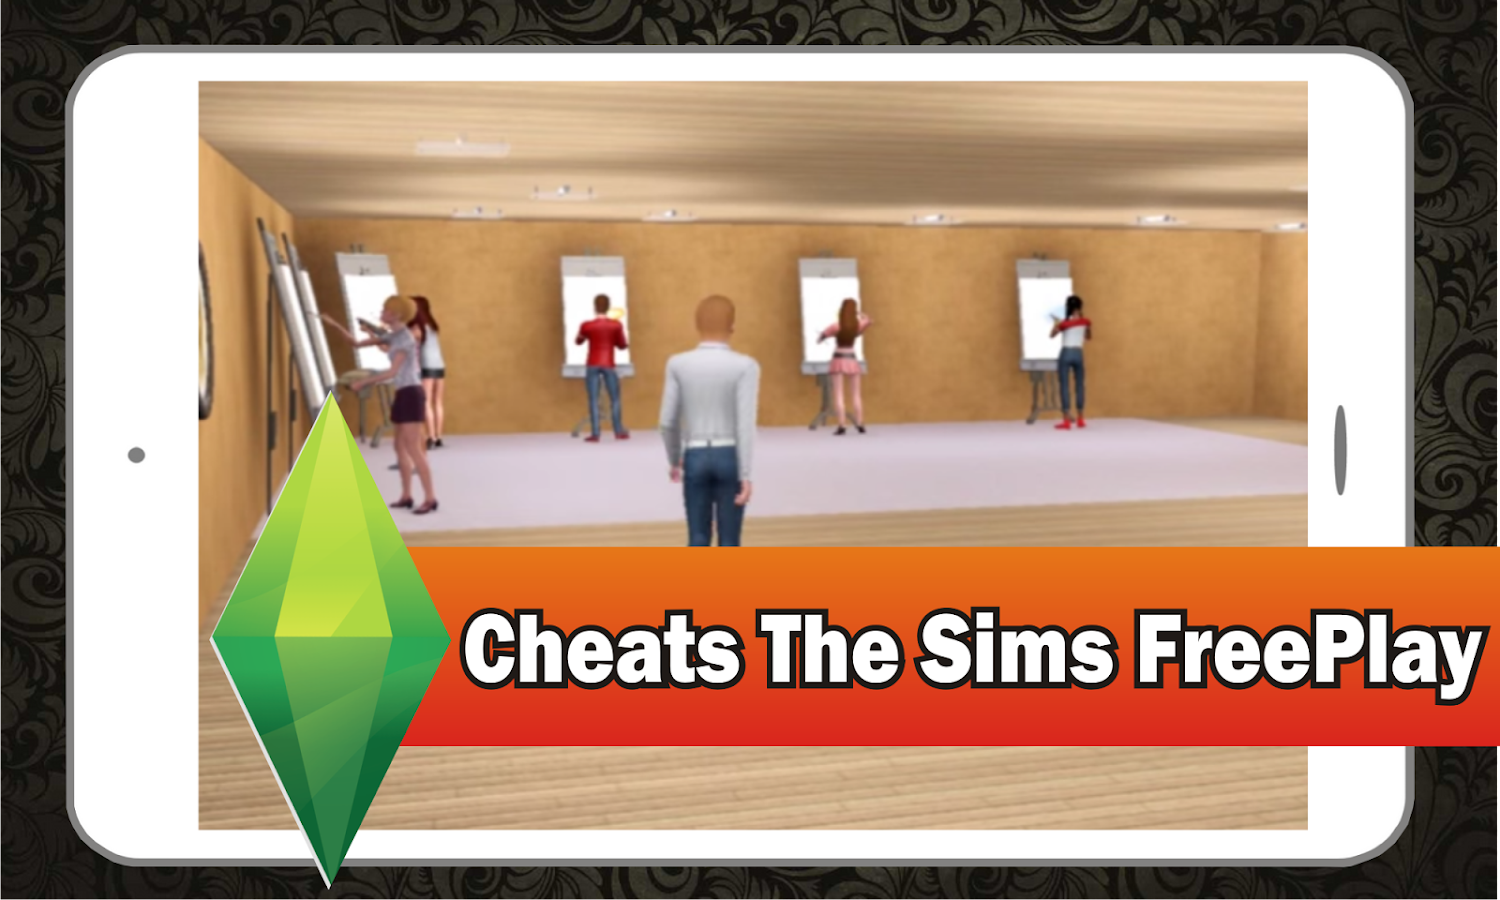 cheats the sims freeplay android apps on google play cheats the sims freeplay screenshot